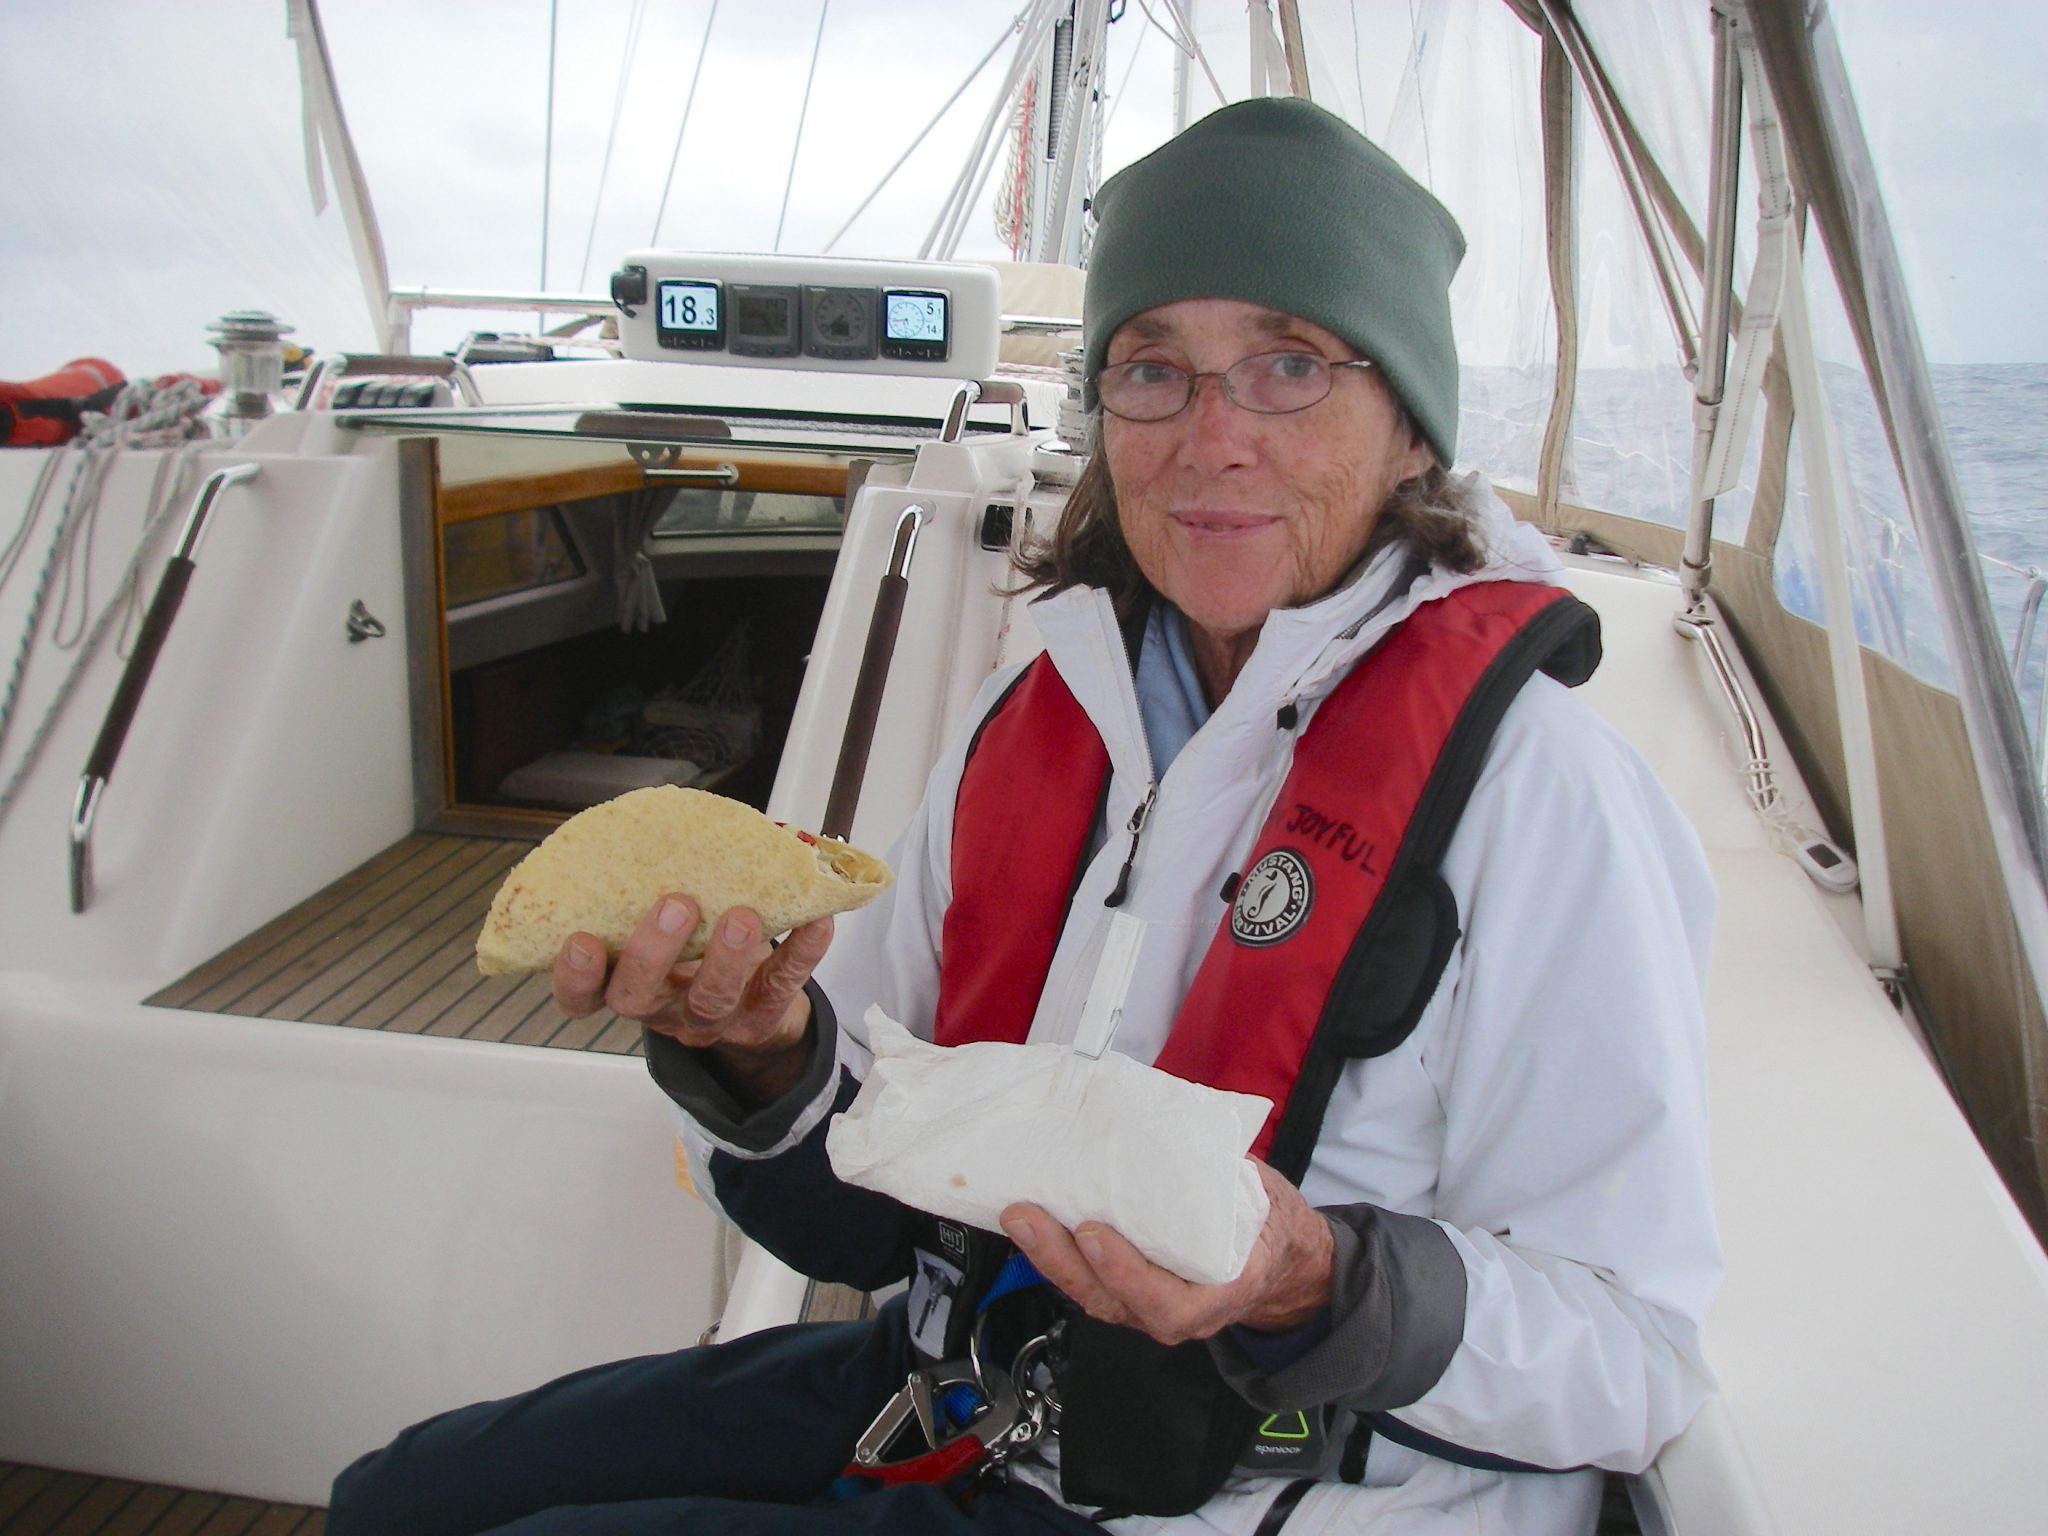 10. Eating lunch underway in 18 knots of wind can be challenging. So one way is to serve tacos in a paper towel closed with a clothes pin It worked well, and Joyful was happy...no mess